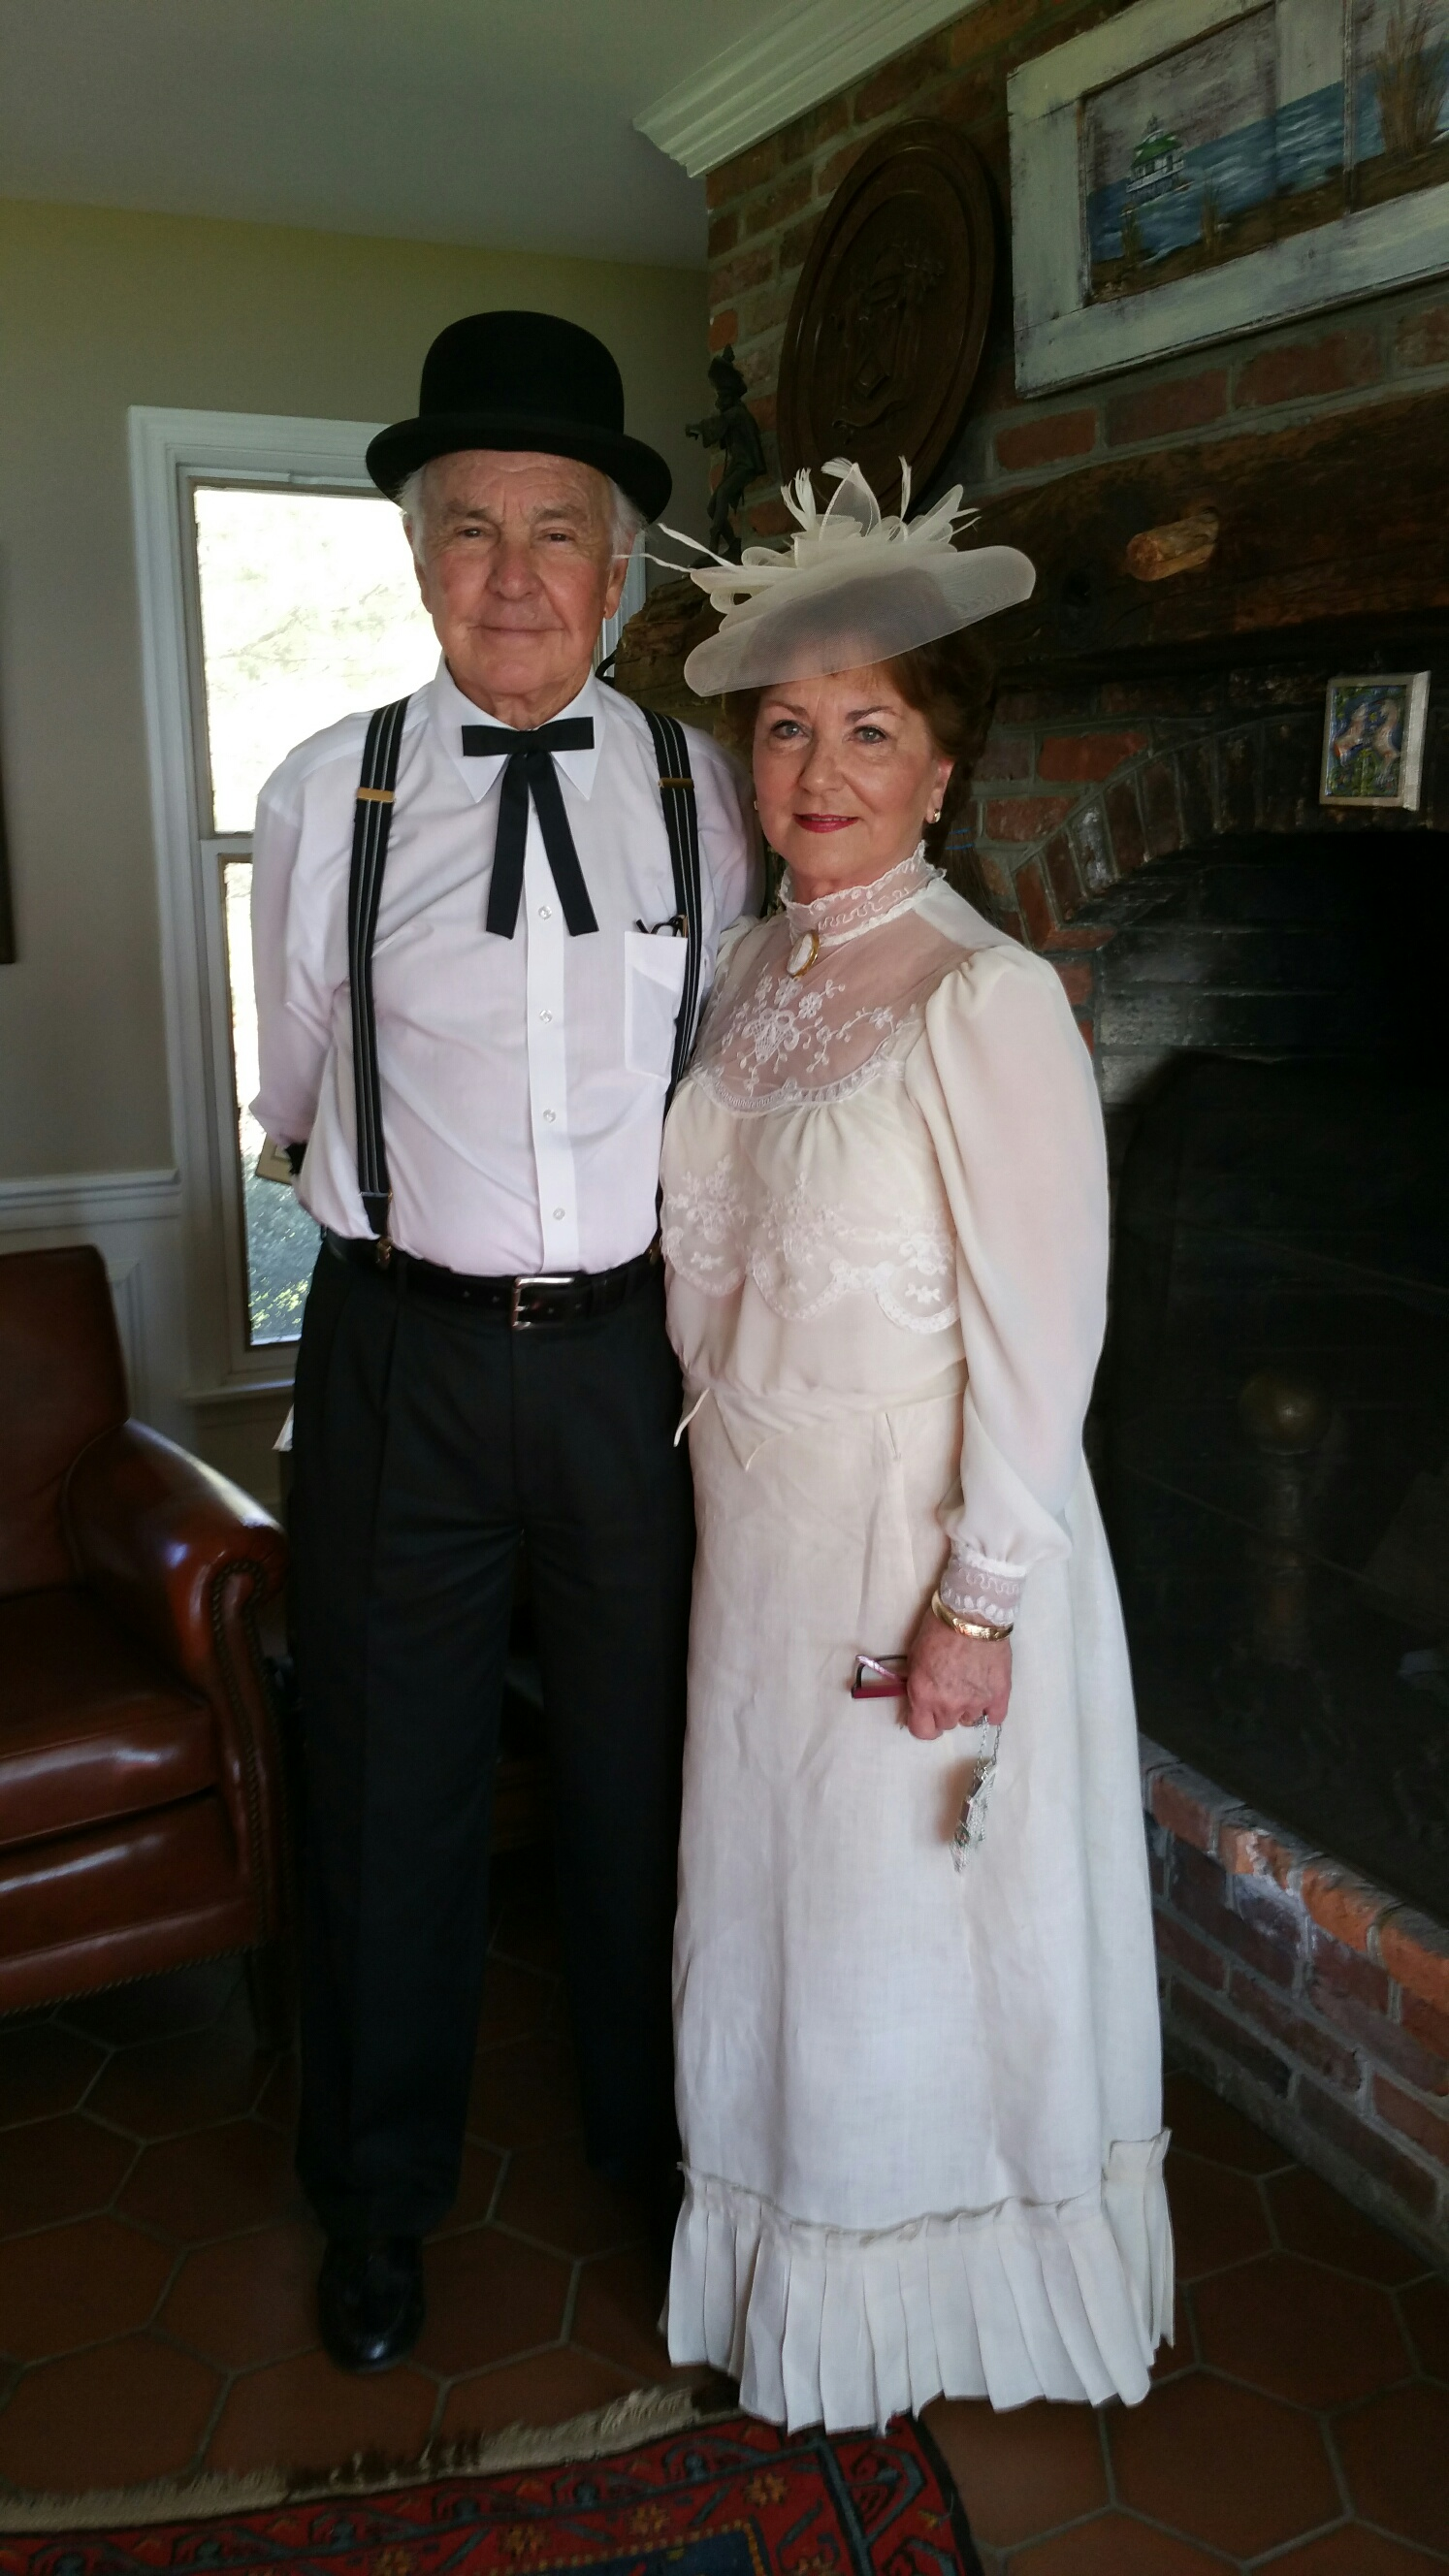 Linda Collier, curator, with husband Butch.